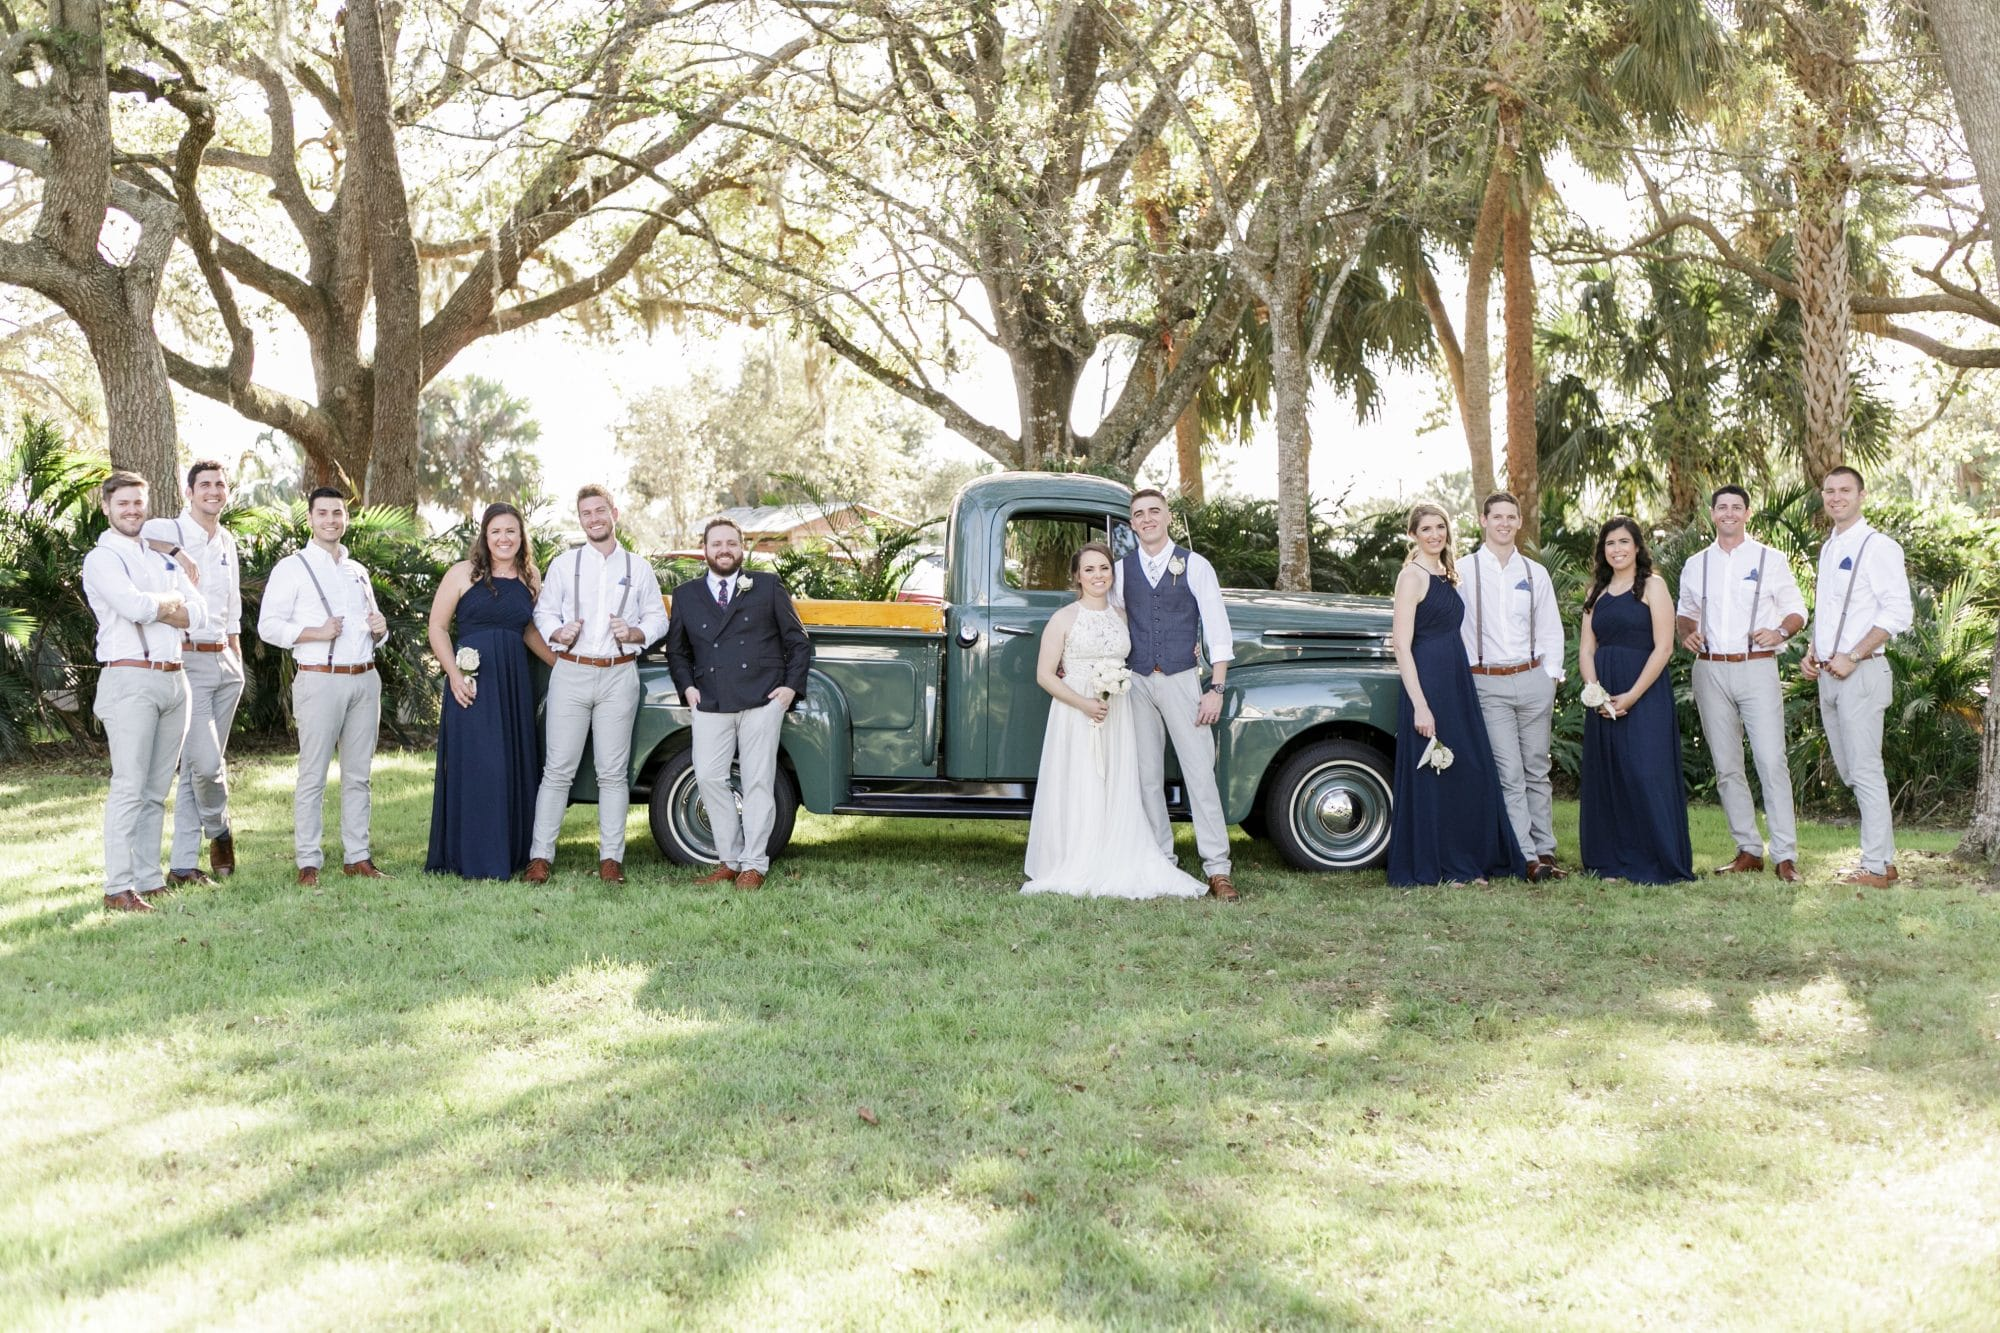 wedding party in front of vintage pickup truck